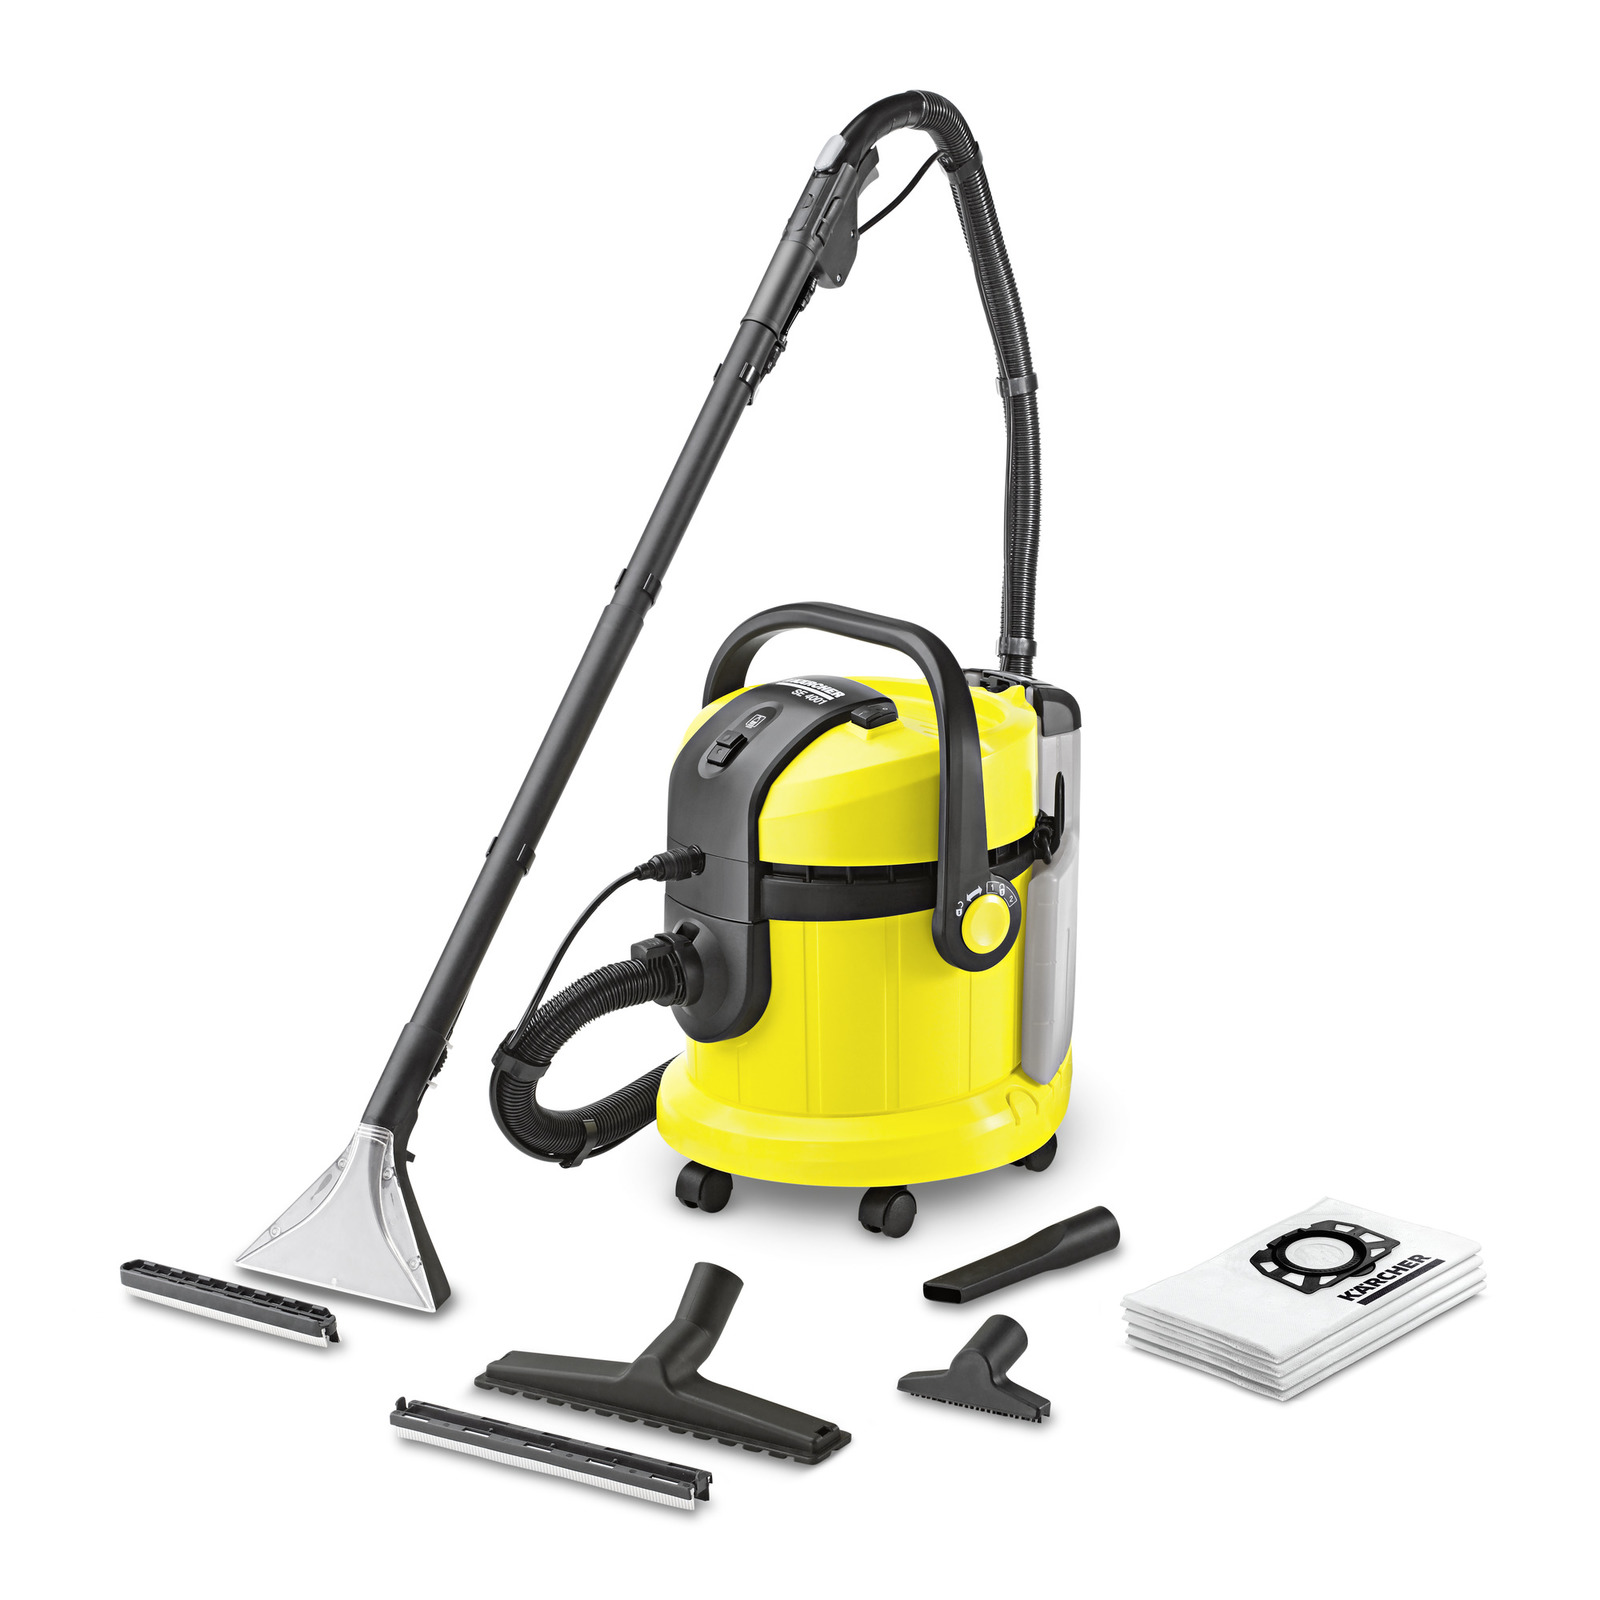 Carpet cleaner SE 4001